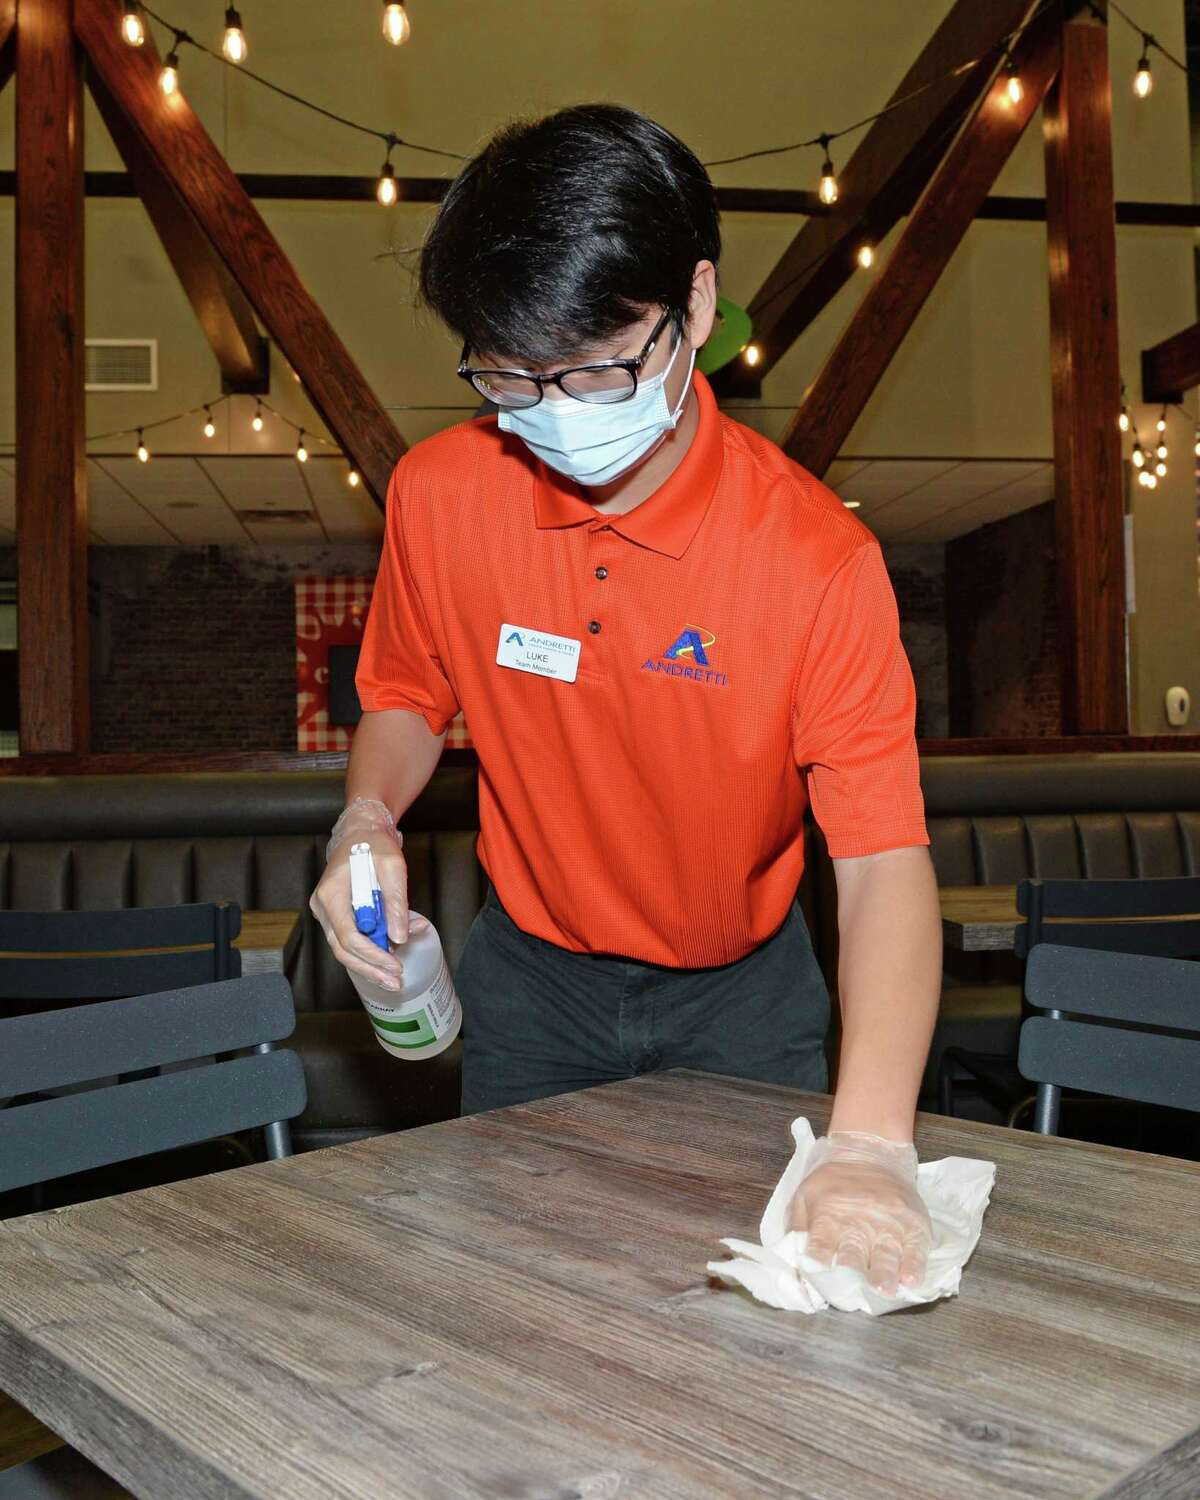 Luke Zhang sanitizes a table at Andretti Indoor Karting & Games, Katy, TX on Thursday, May 28, 2020.